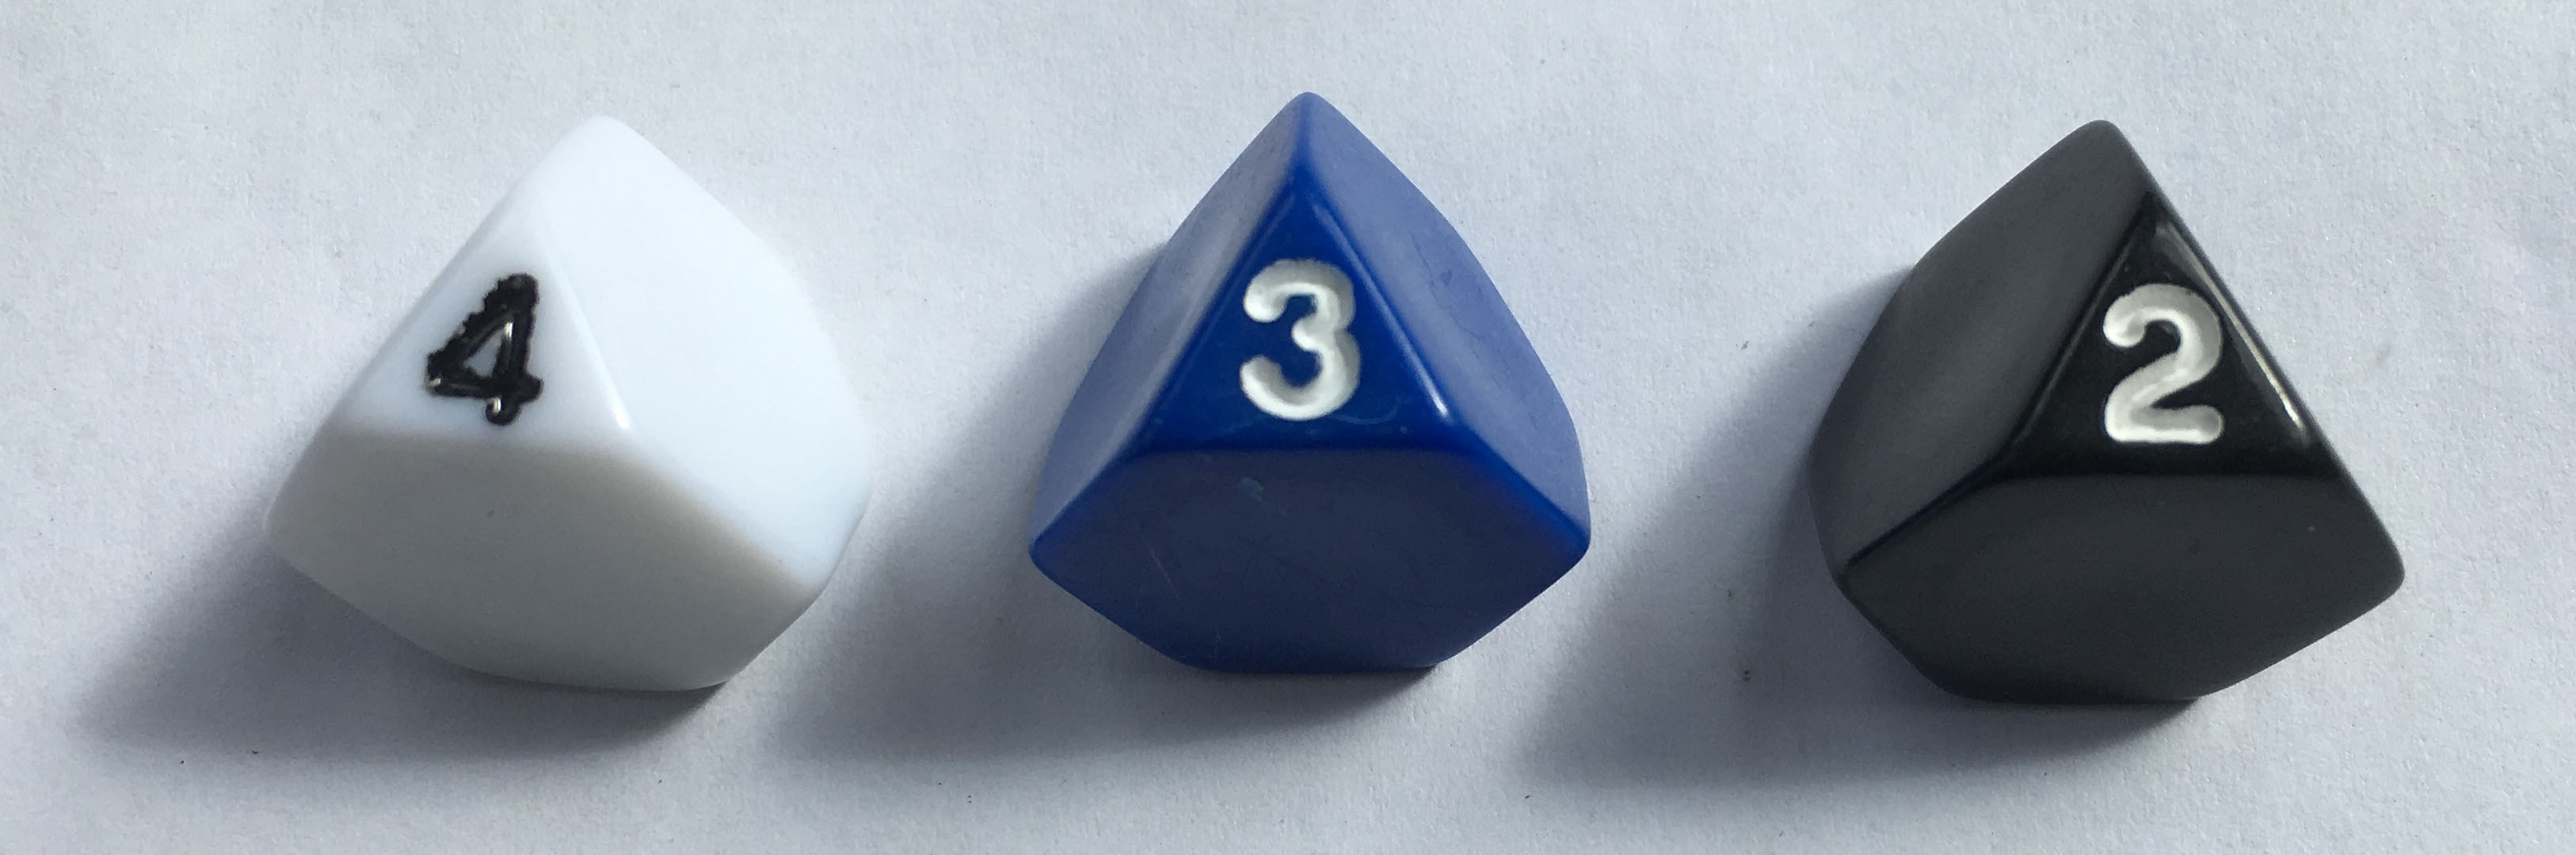 Truncated 4 Sided Dice - Set of 3 D4